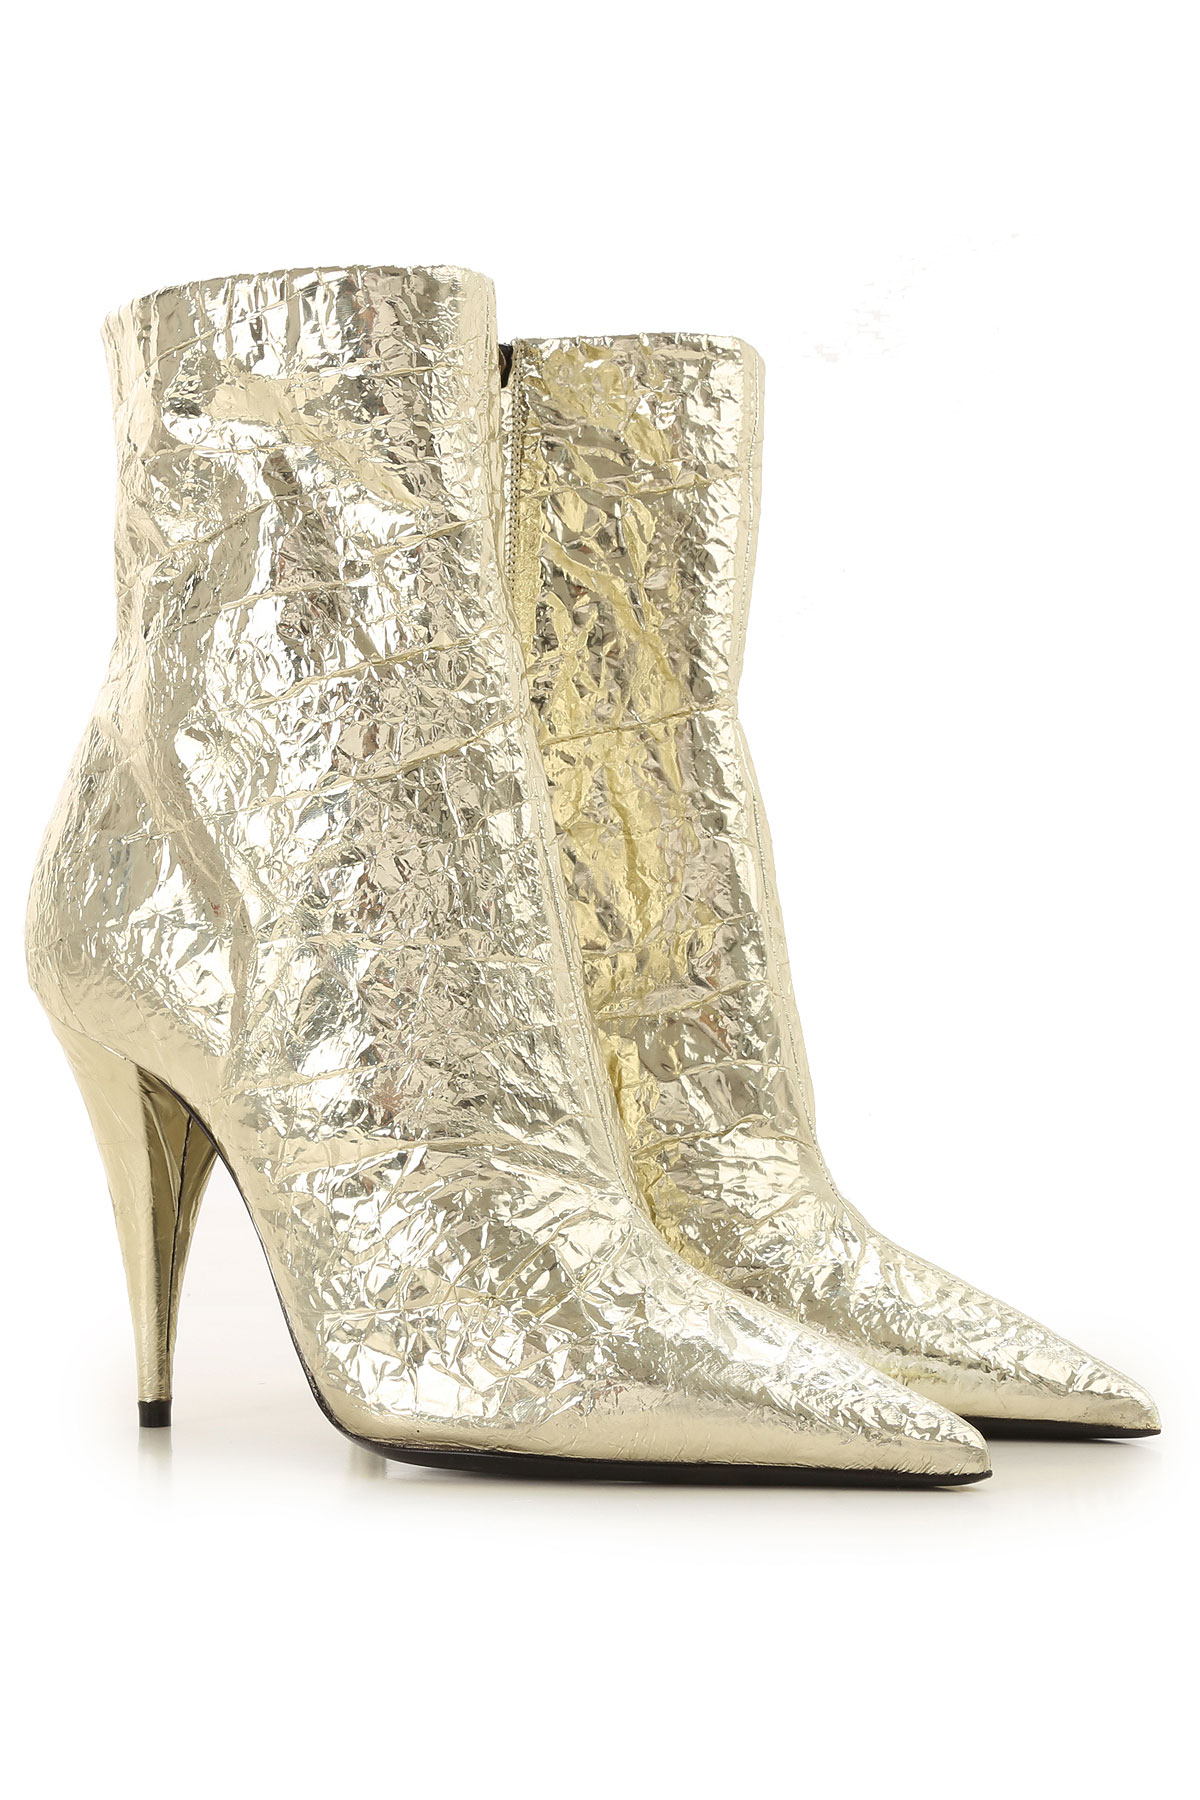 Yves Saint Laurent Boots for Women, Booties On Sale, Platinum, Leather, 2019, 5.5 6 8.5